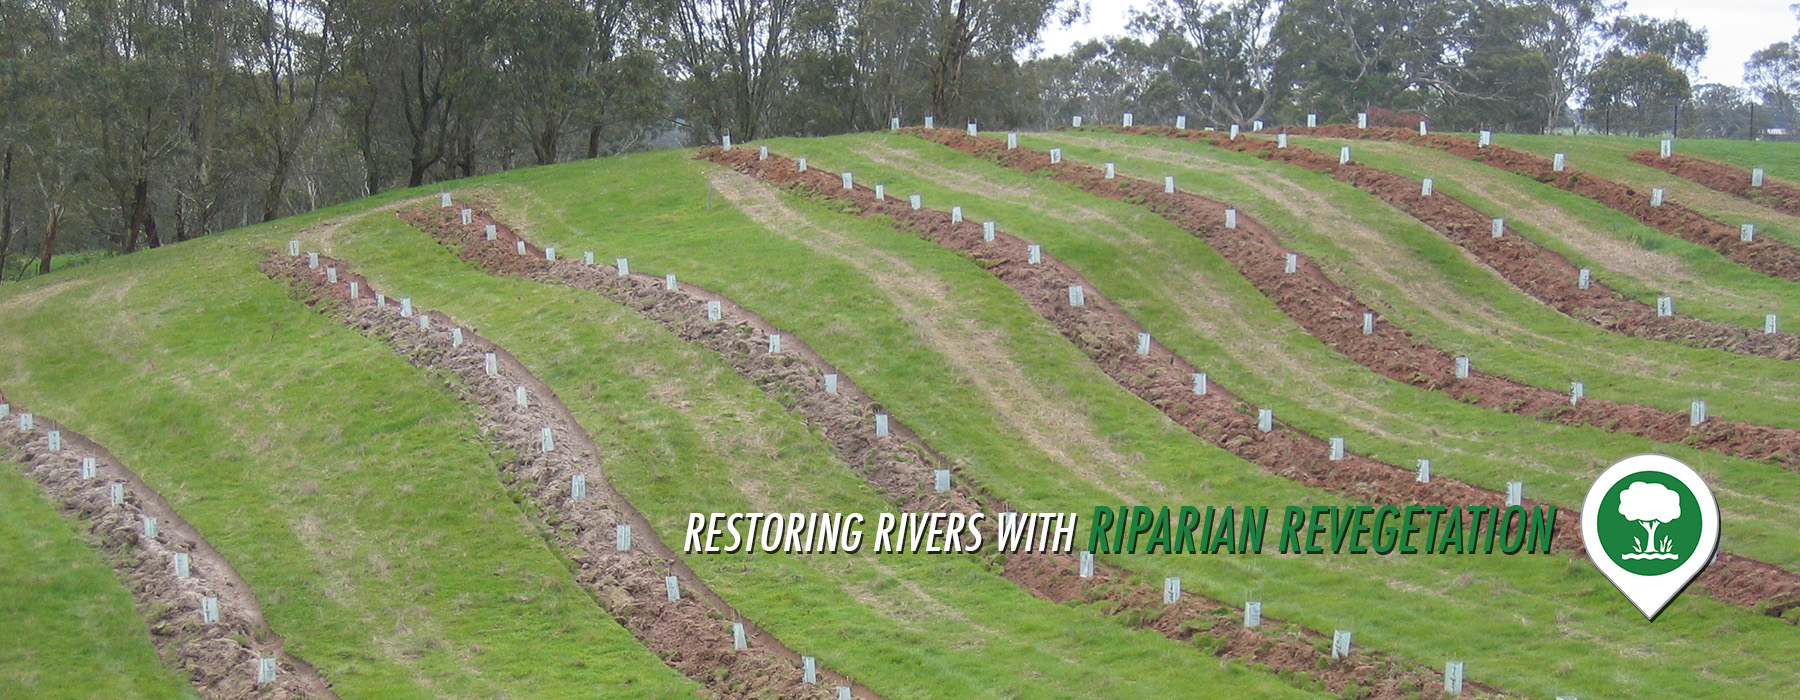 RS-riparian-revegetation-slider-v2